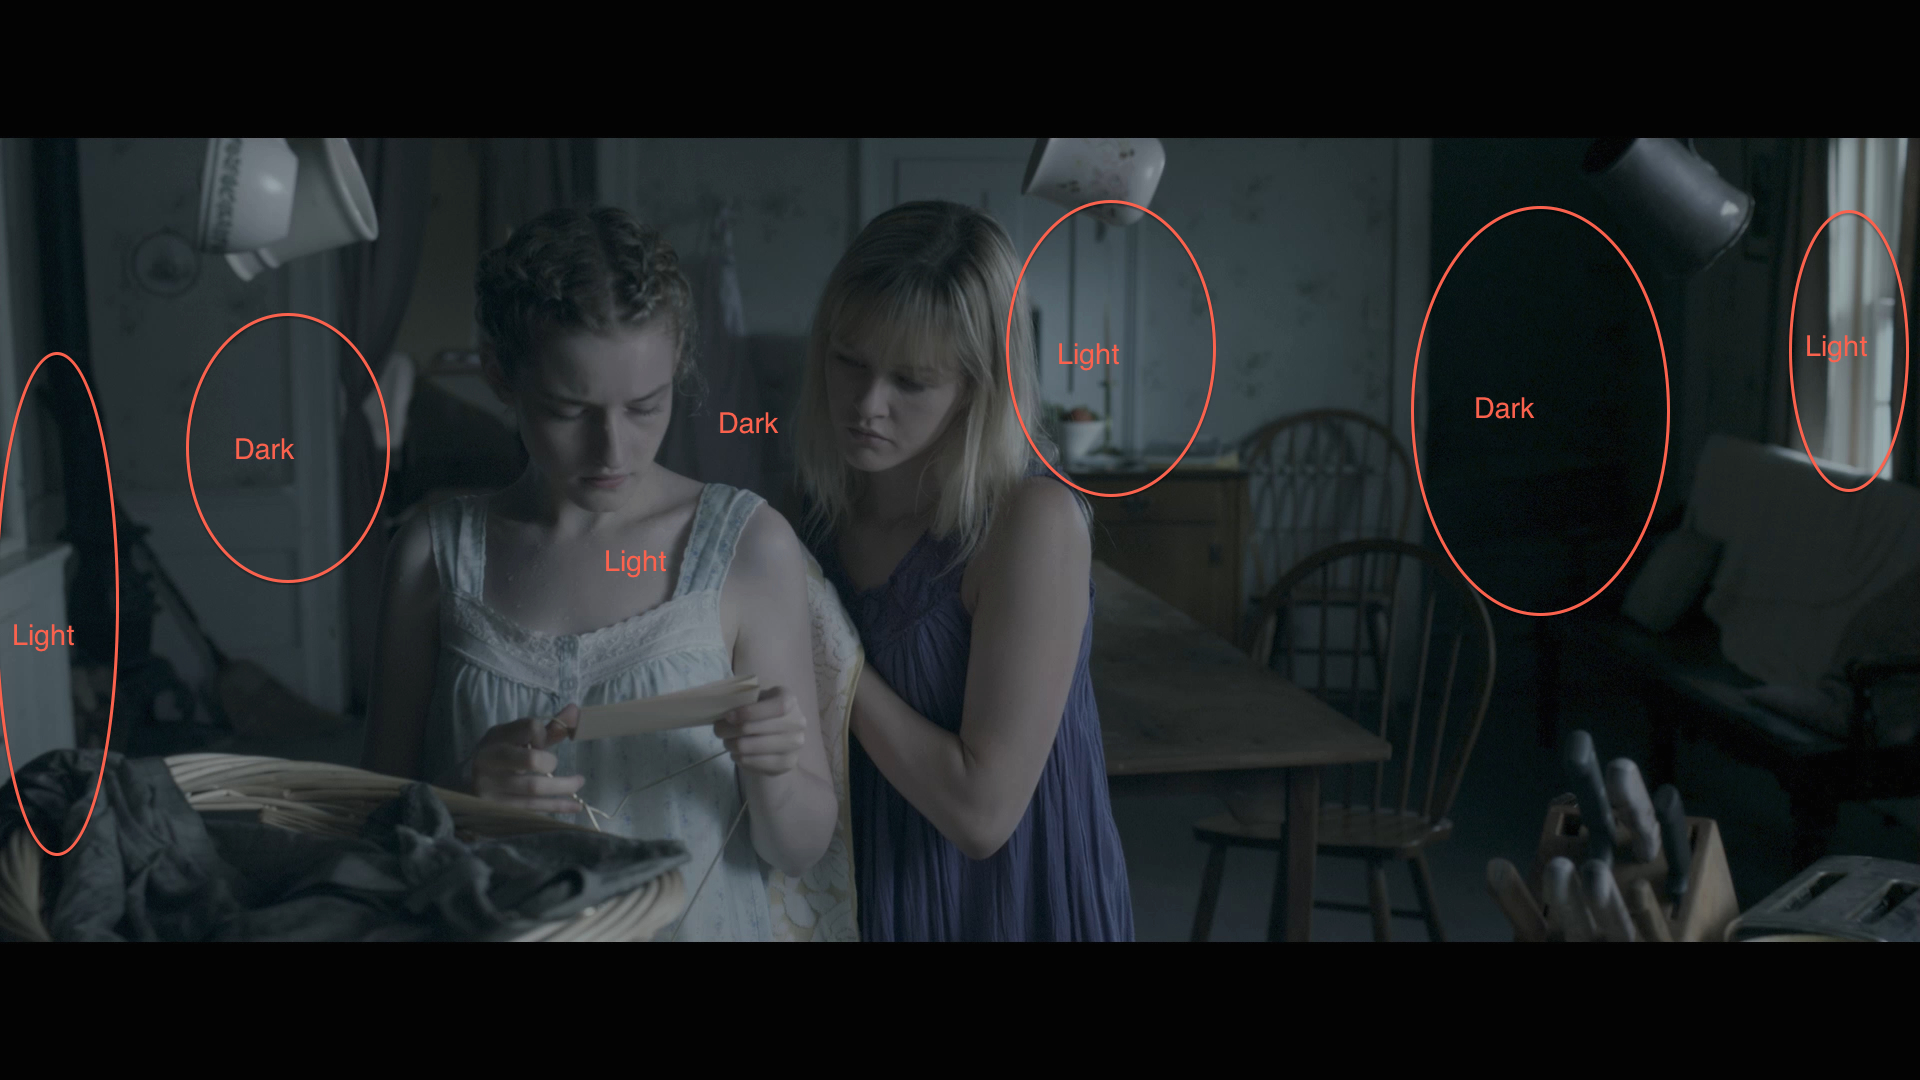 Helpful Ways for Cinematographers to Get a Grip on Lighting